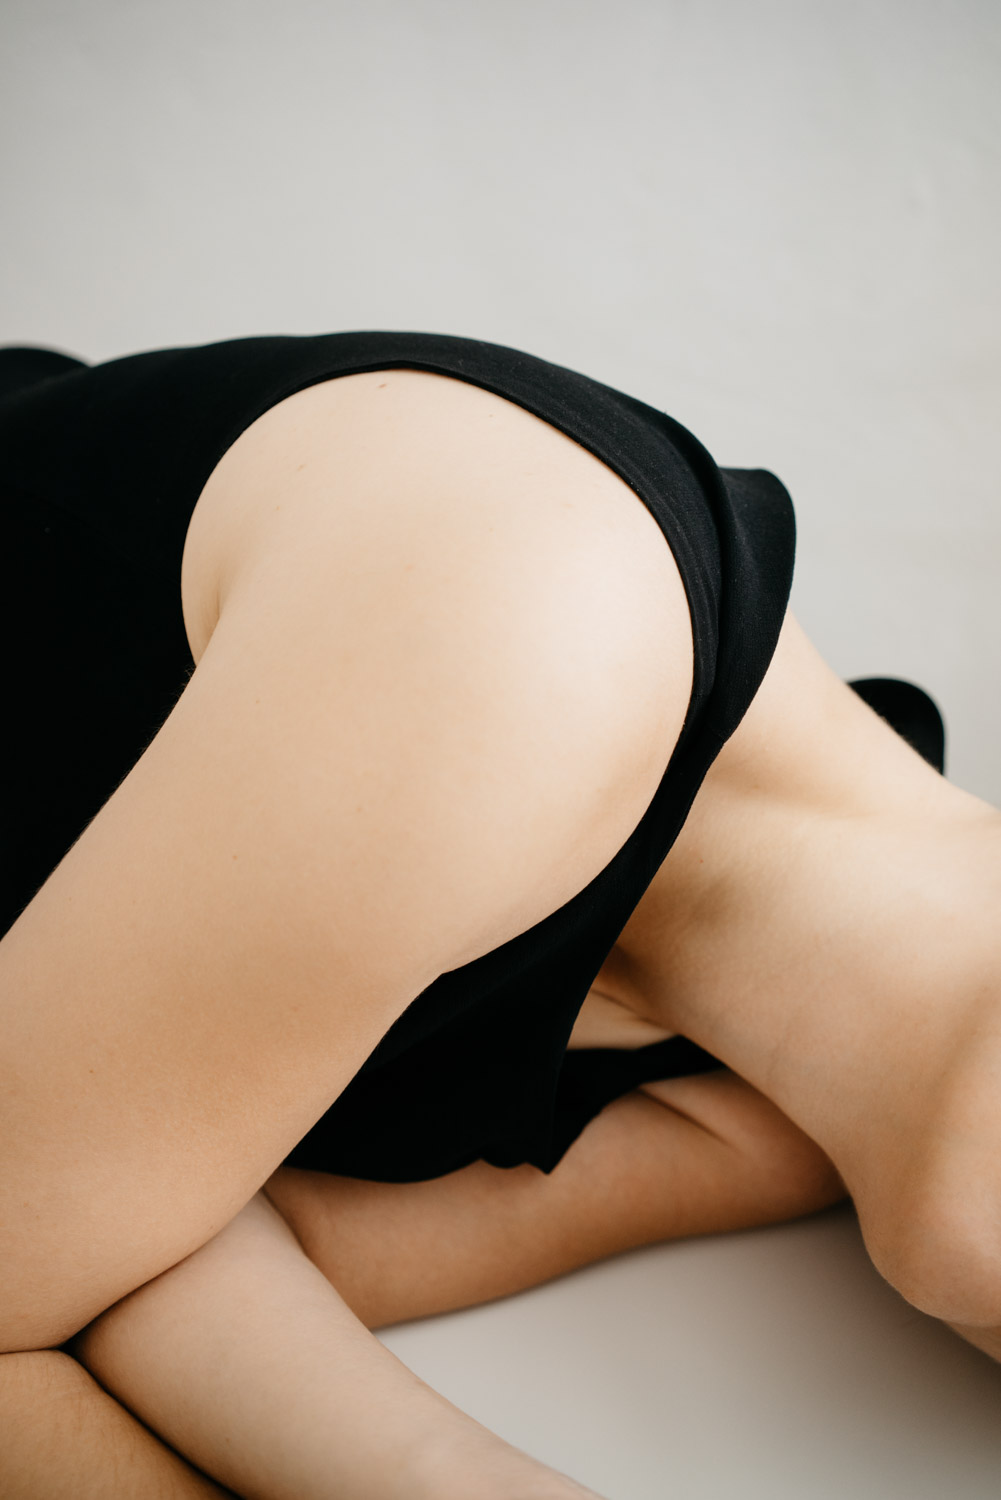 Delphine Millet Fagments - Body shoulder pain cry vulnerable dance human condition lonely photography minimalist graphic delicate - Art conceptual photographer in Berlin